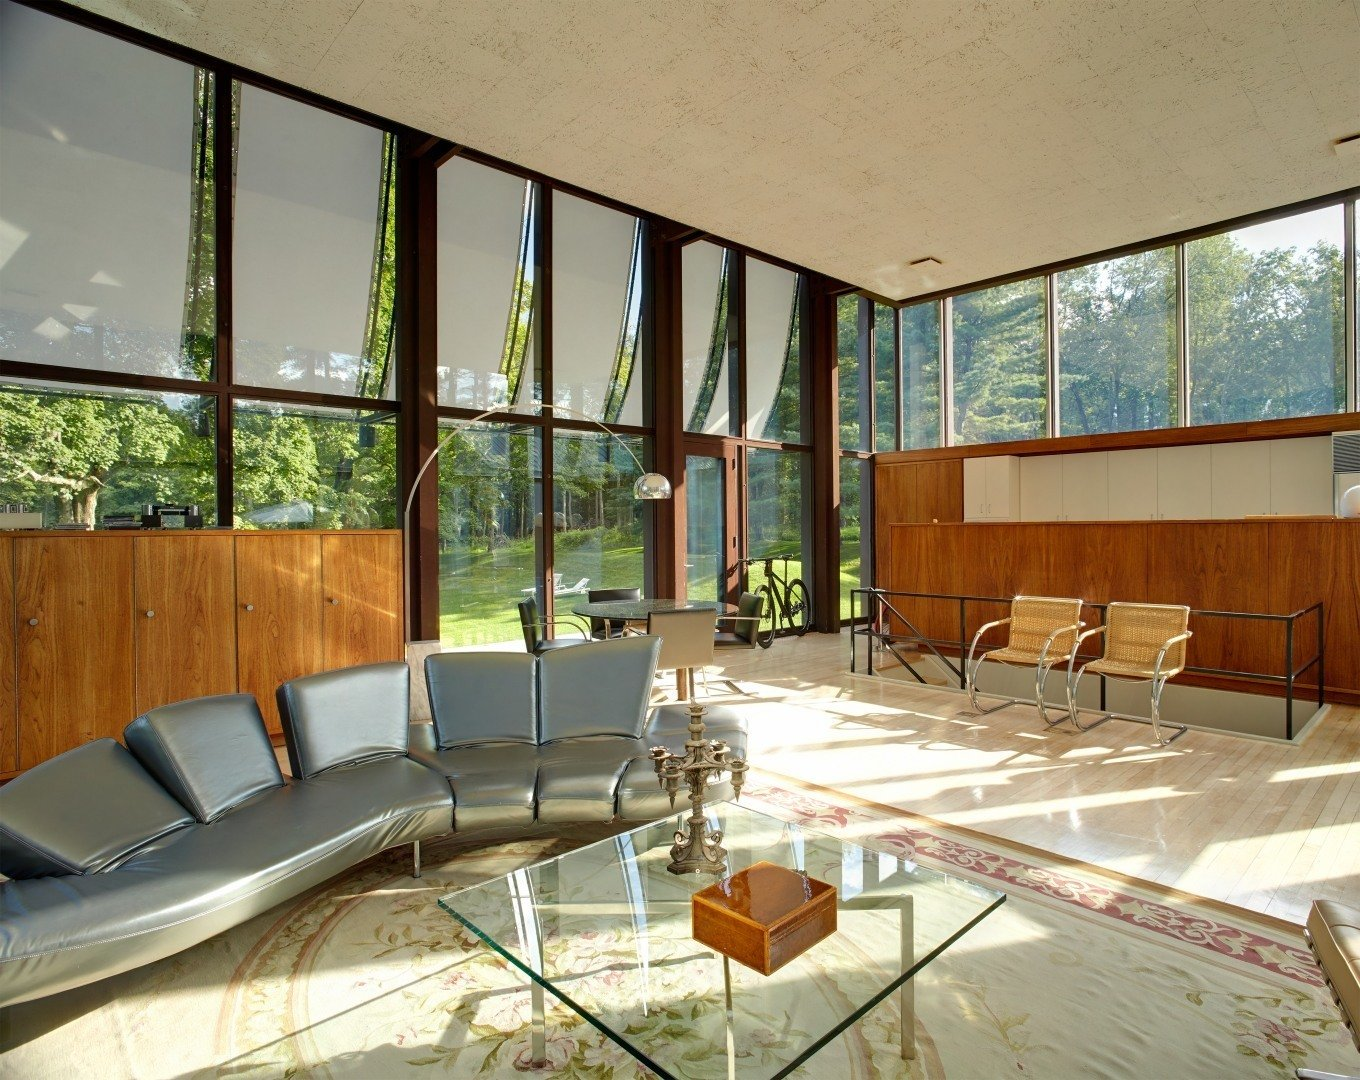 Since the large windows had gone through some harsh wear and tear over the years, Ferris decided to replace the old window panels with new double-paned windows while following Johnson's original drawings. Ferris personally knew Johnson and made sure to stick to his vision when restoring the house.   Wiley House by Dwell